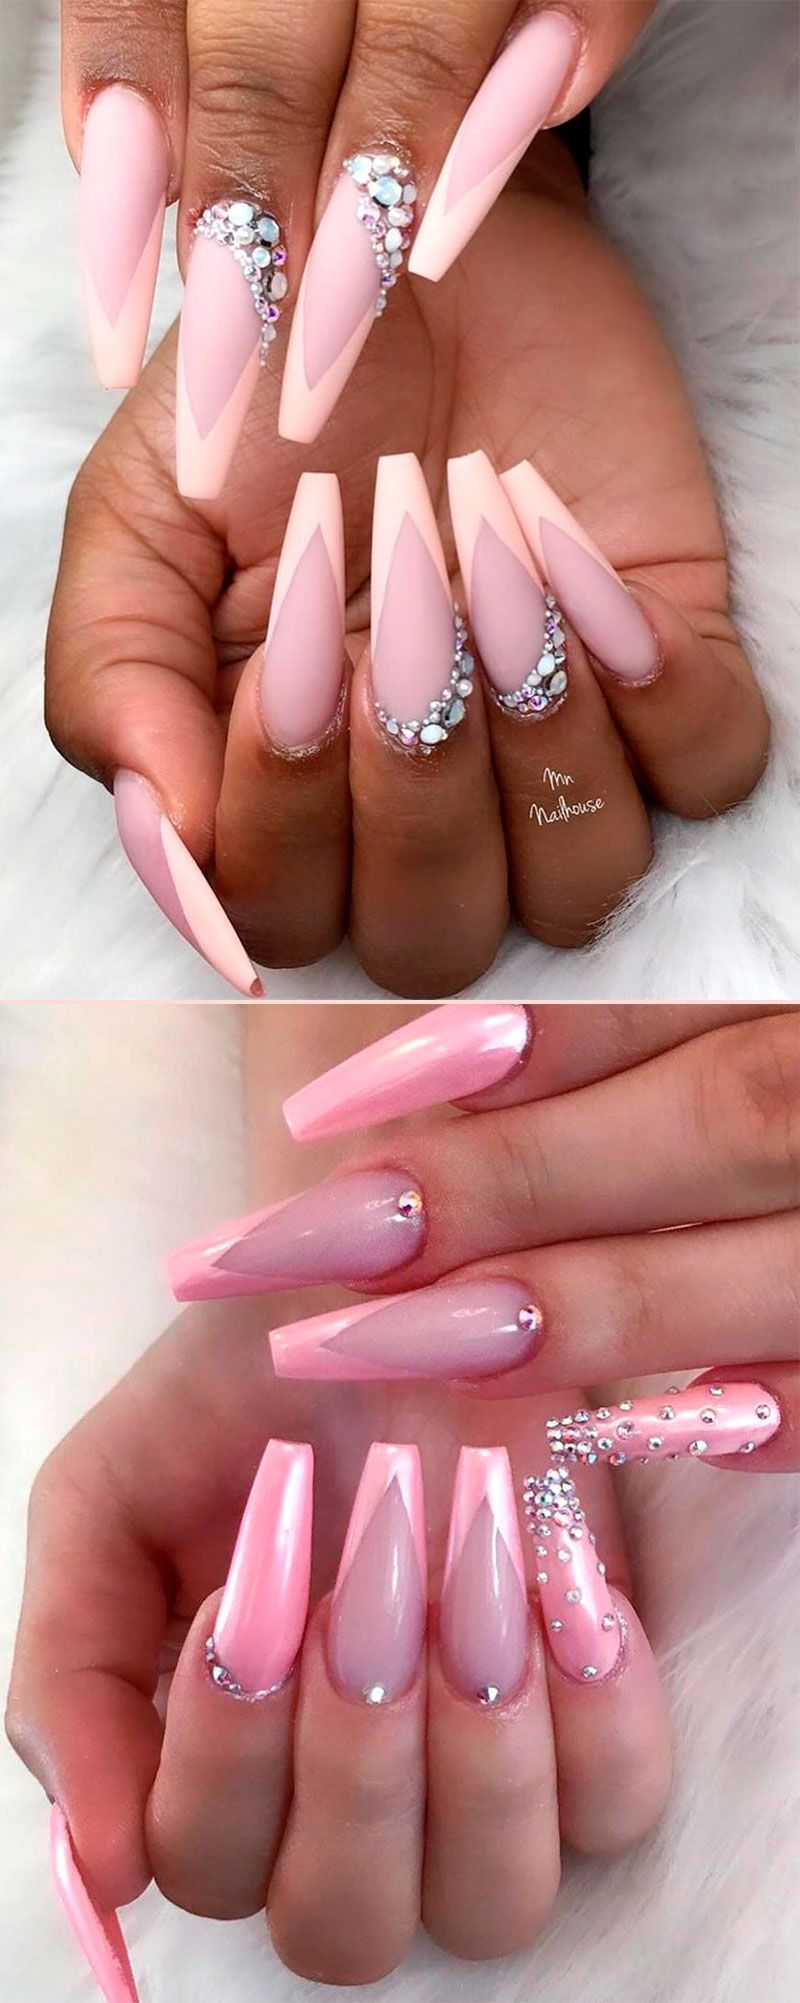 9 Stunning Modern French Manicure Ideas Stylish Belles Coffin Shape Nails Coffin Nails Designs Perfect Nails